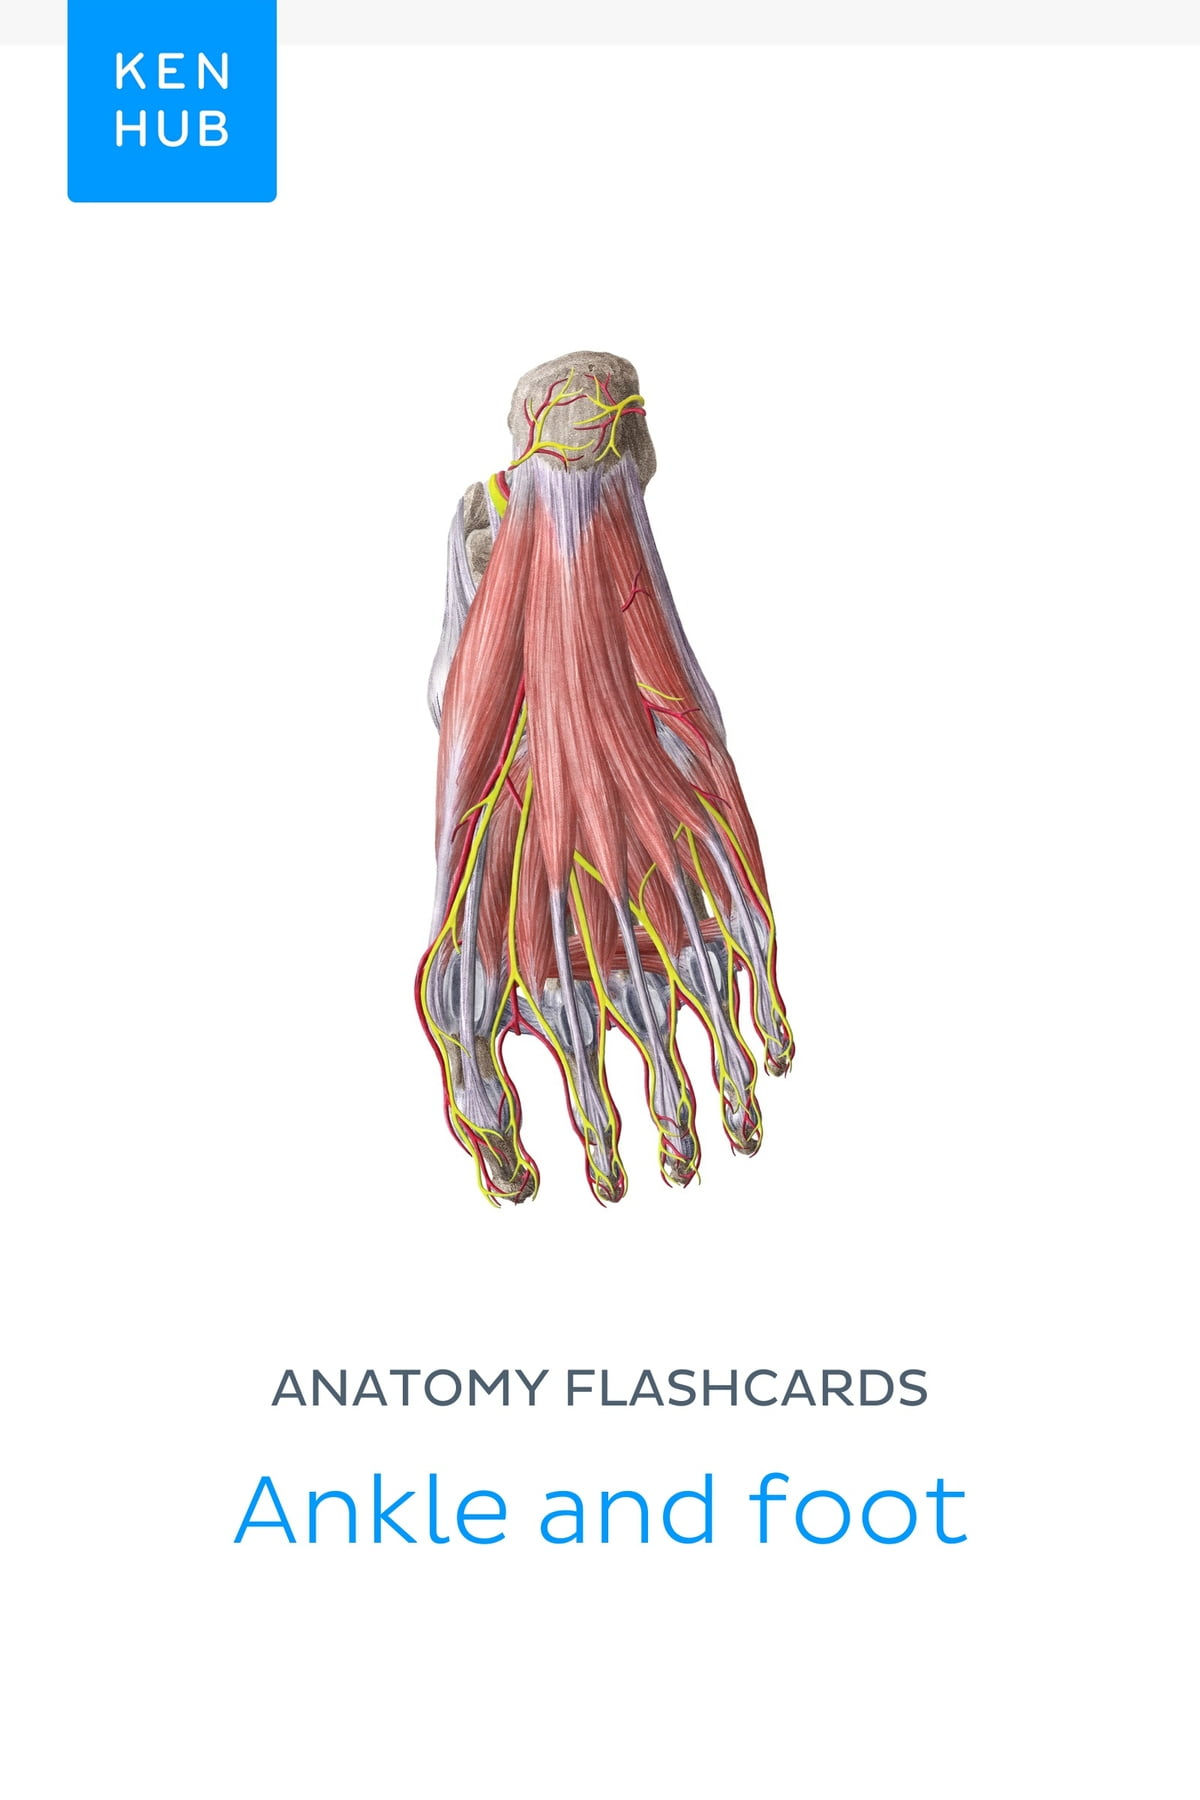 Anatomy Flashcards Ankle And Foot Ebook By Kenhub 9783962980627